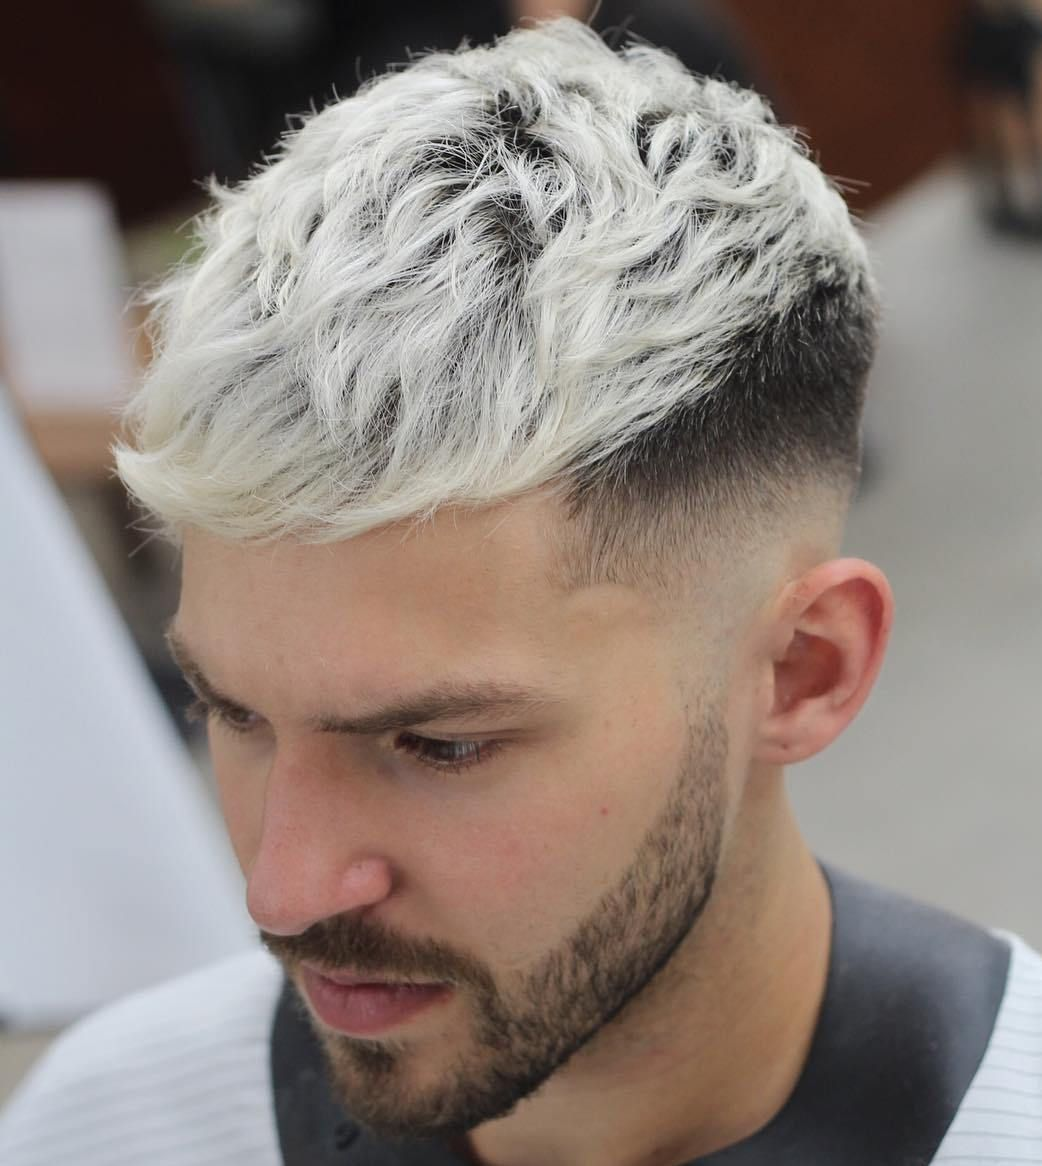 20 Stylish Men S Hipster Haircuts Dyed Hair Men Bleached Hair Men Hipster Hairstyles